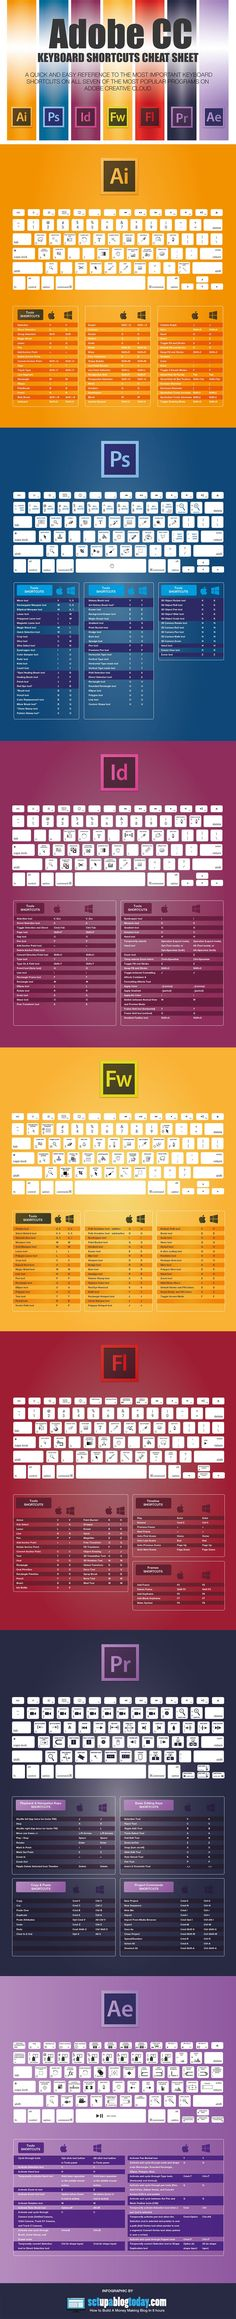 #Adobe #CheatSheets #KeyboardShortcuts #AI #Illustrator #Photoshop #InDesign